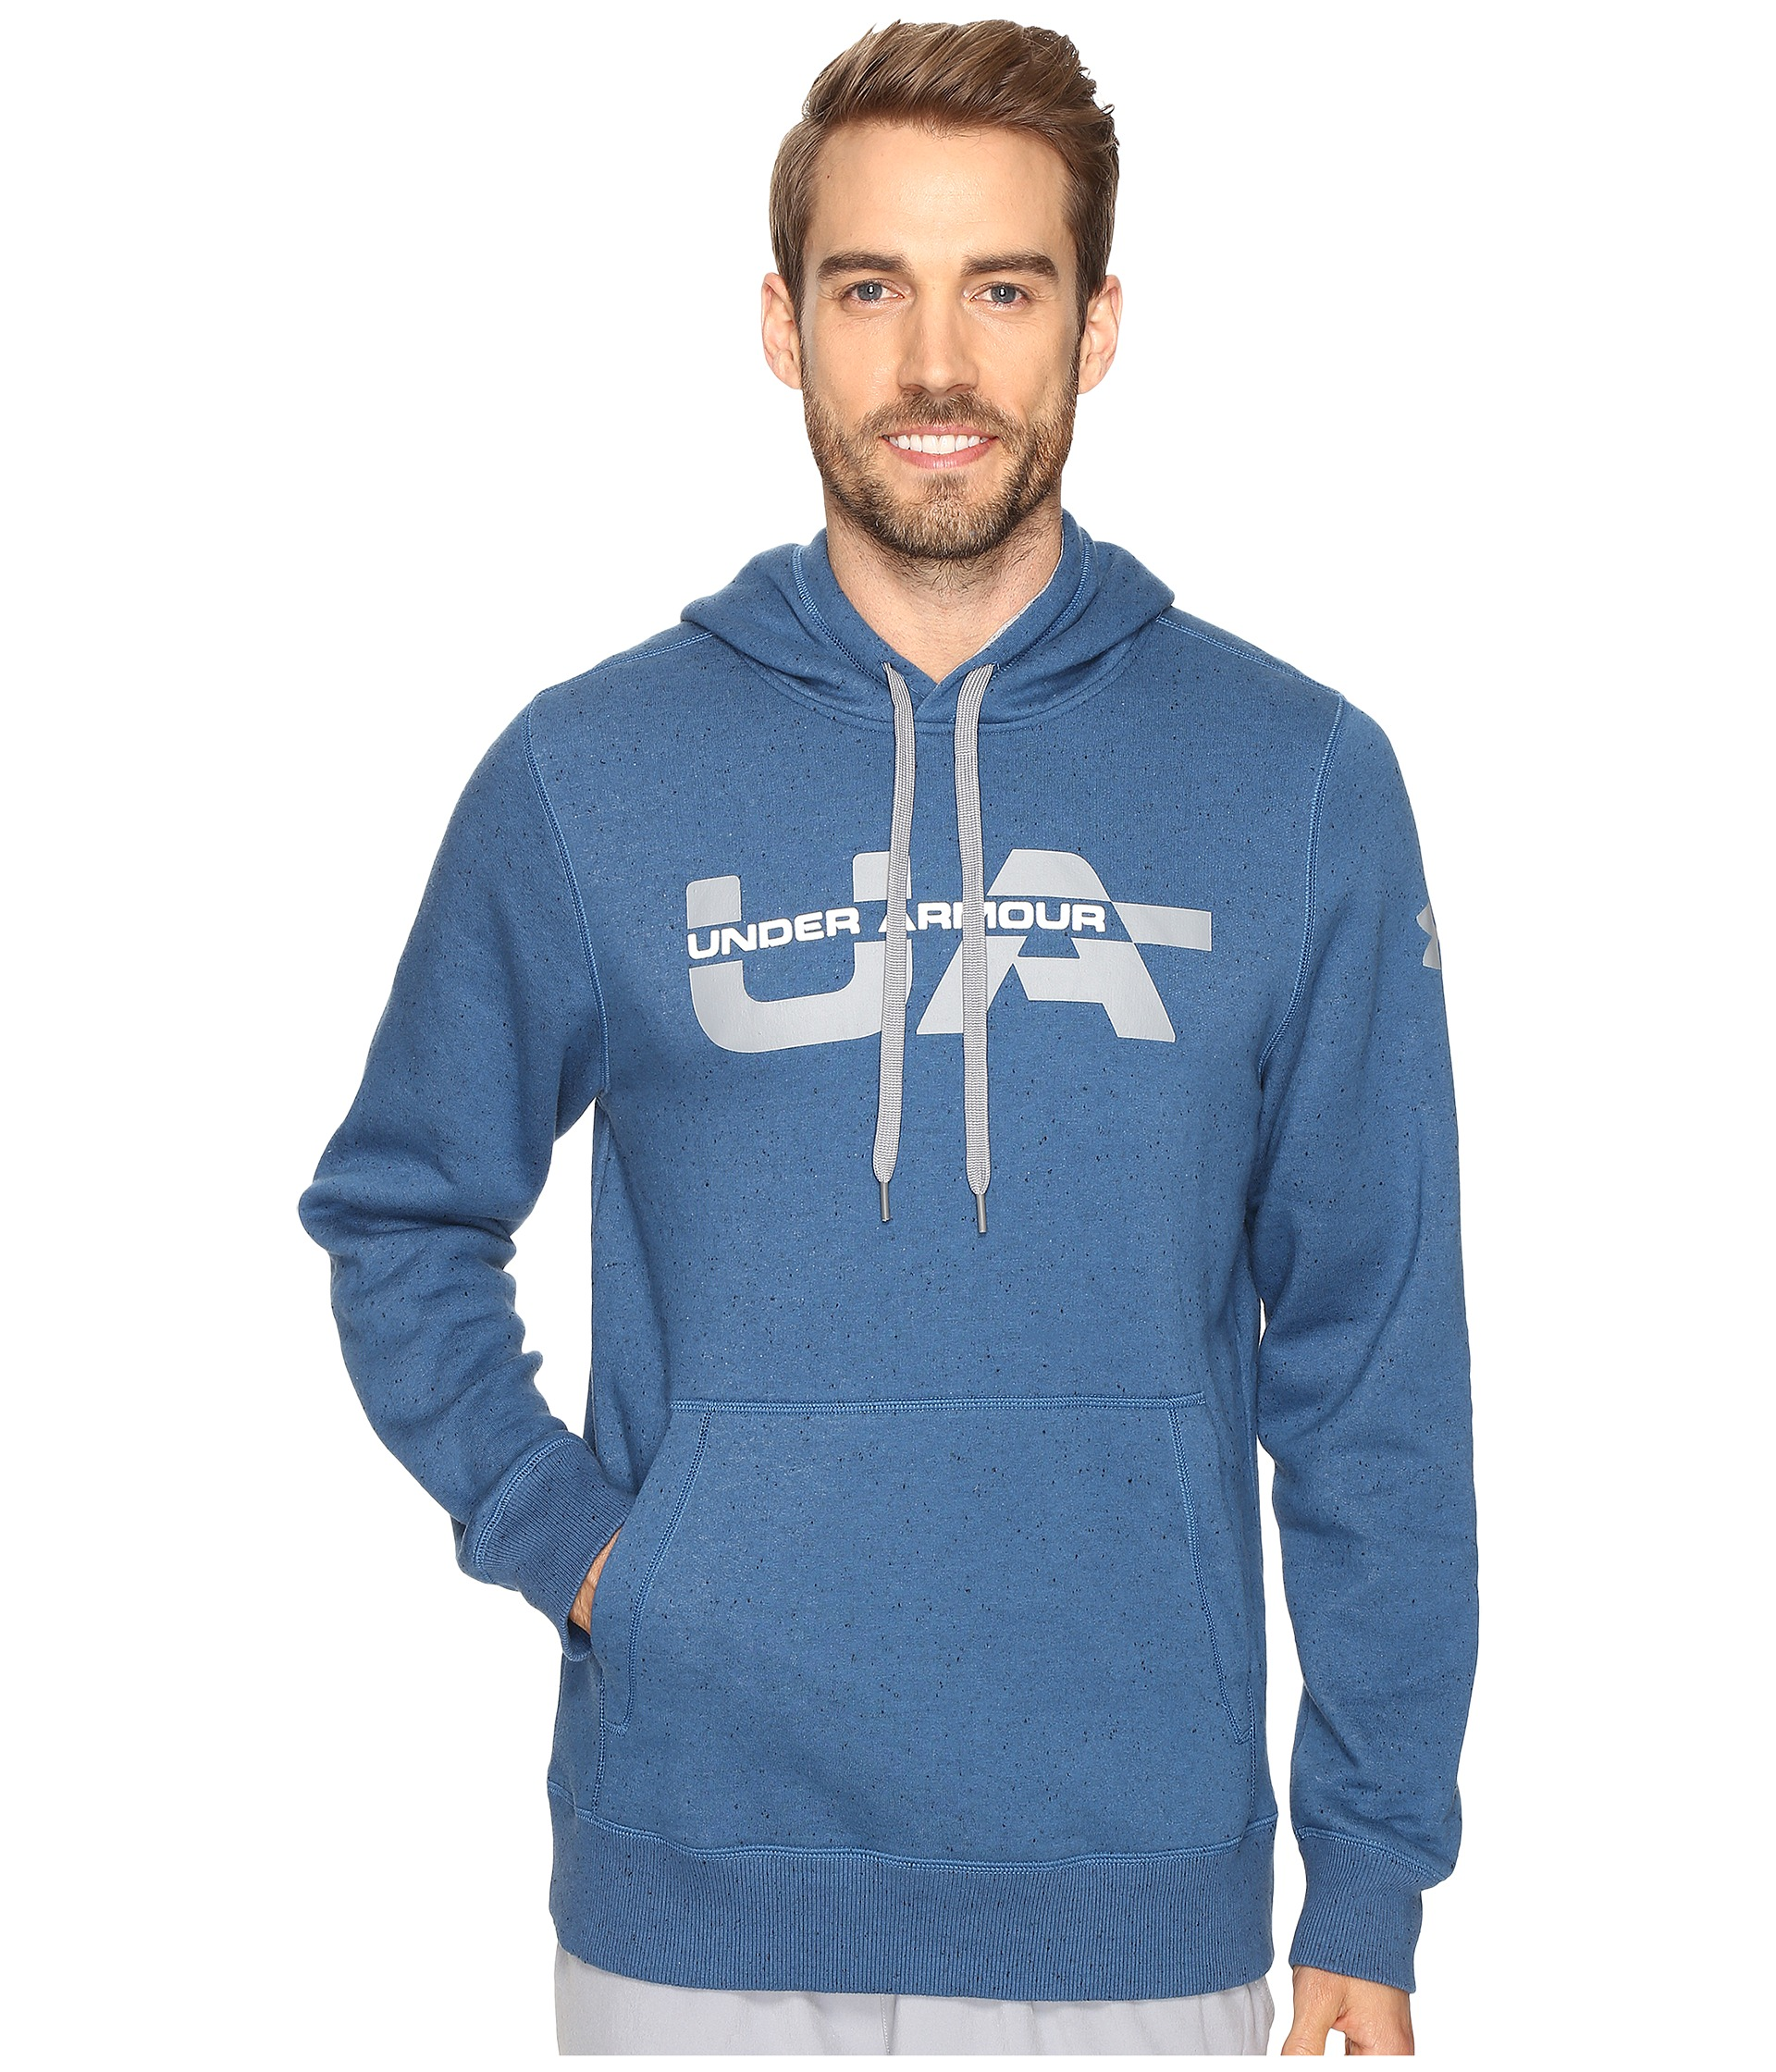 Mens under armour hoodies clearance sale